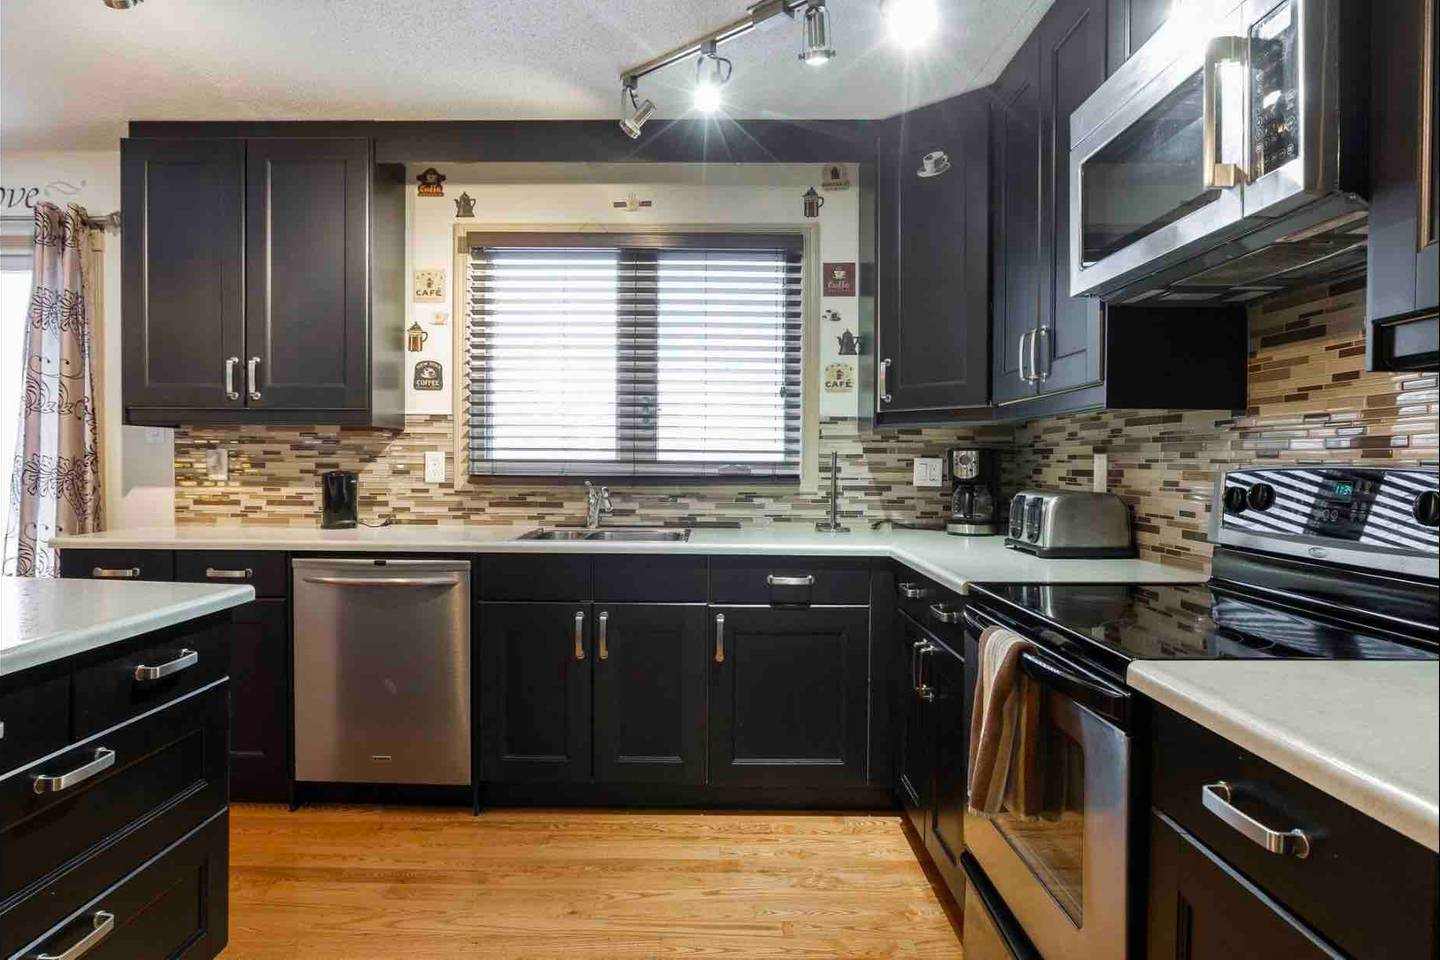 Apartment REST EASY - 6 MINS FROM WEST ED MALL - 3 BEDROOMS photo 18724636